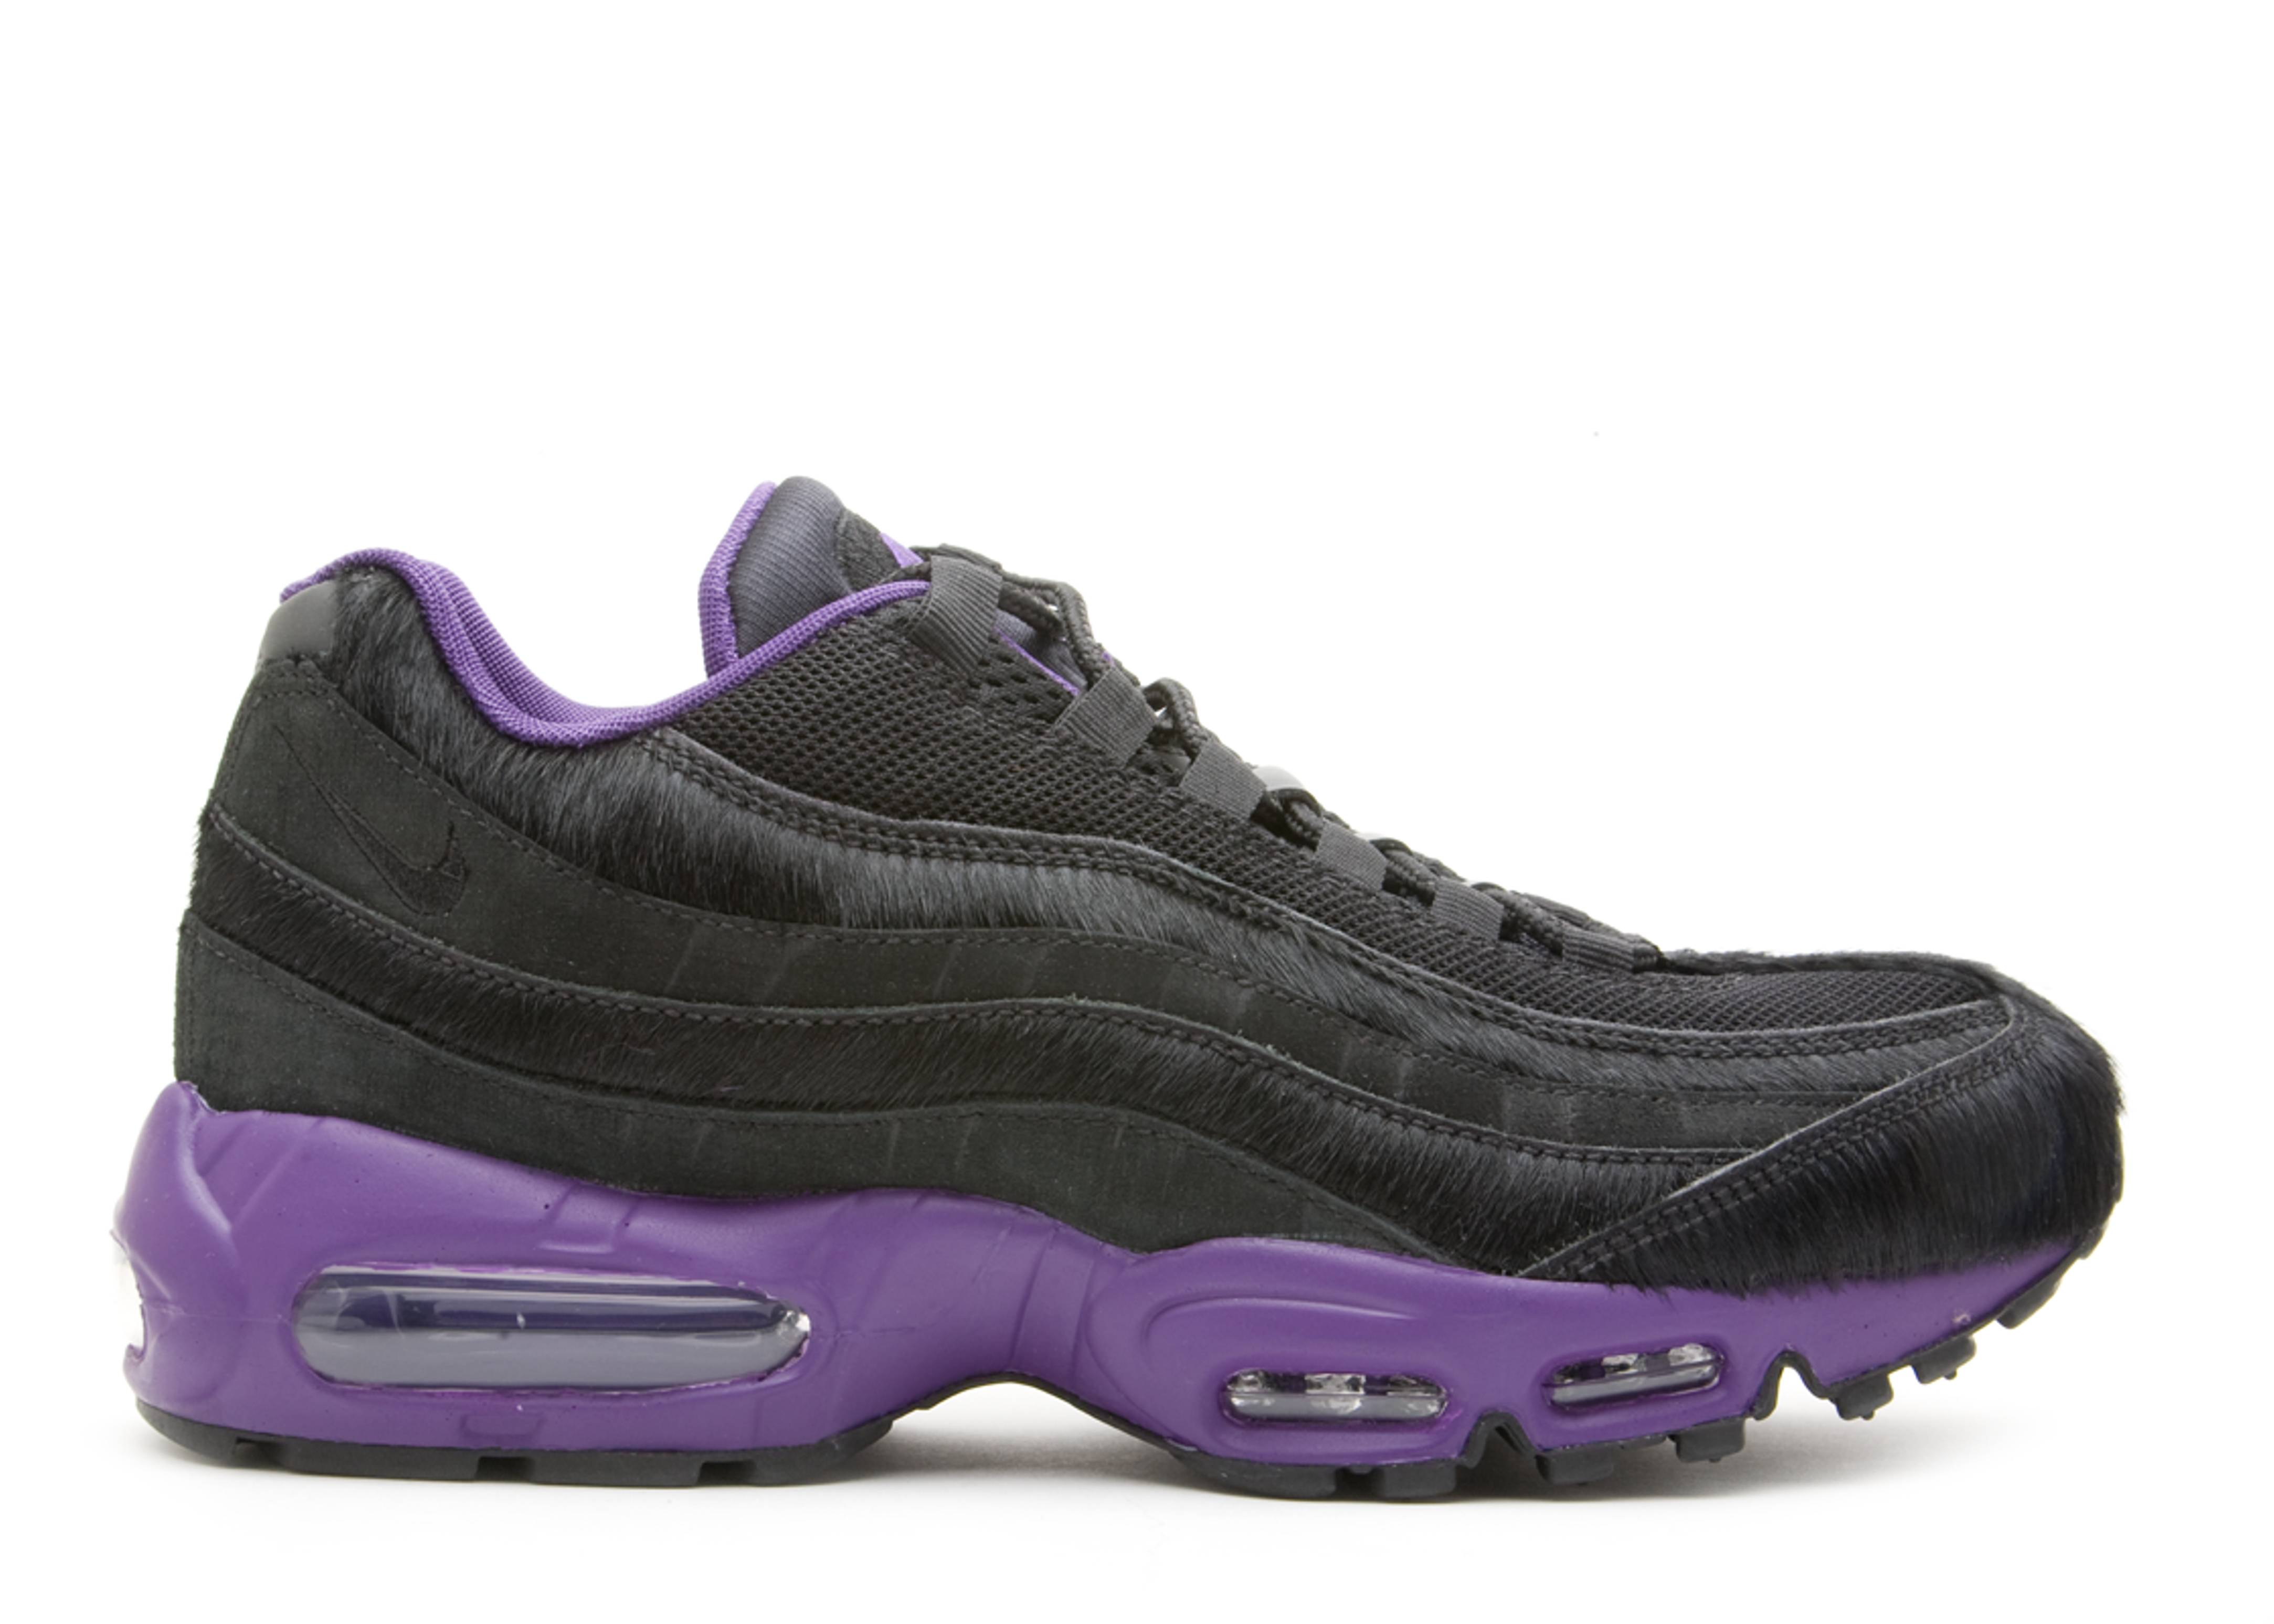 Blackblack Club 609048 95 Pack 025 Air Nike Max Attack f6ygb7